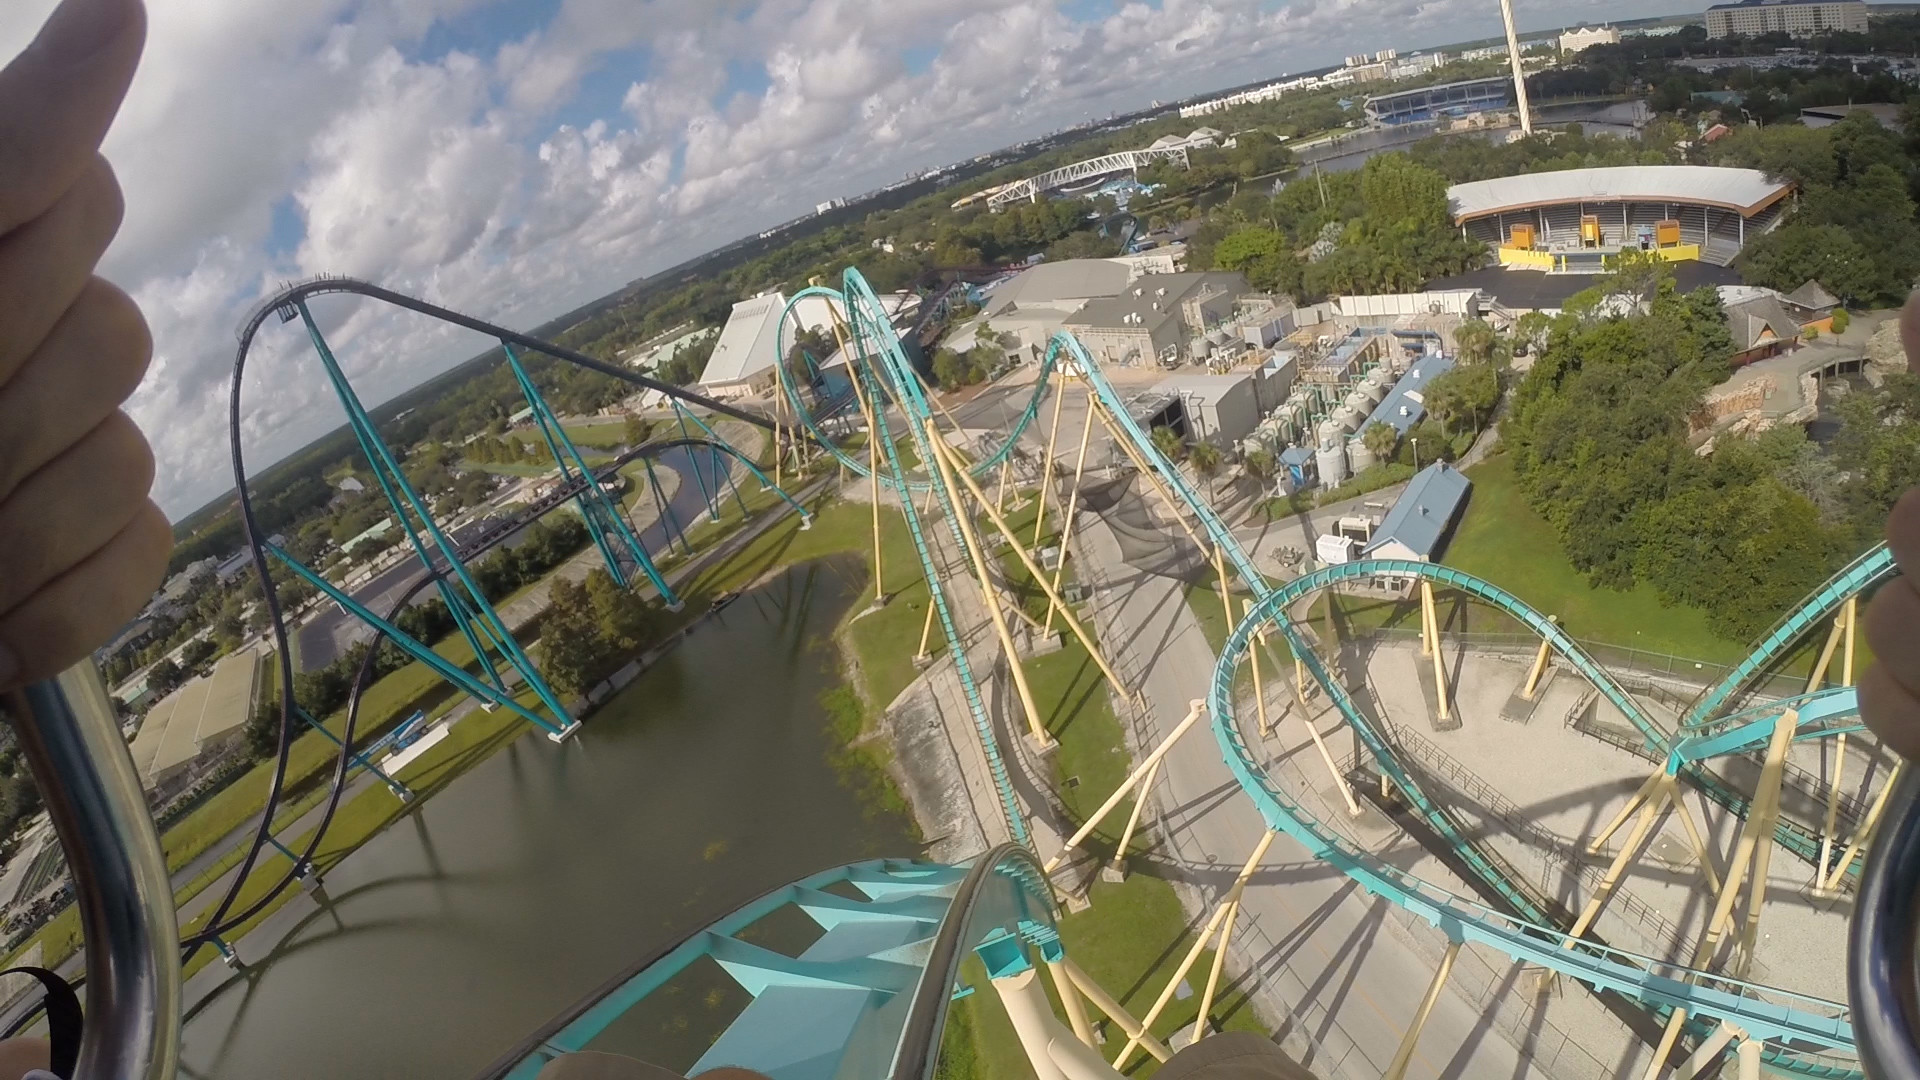 First person view: Kraken roller coaster at SeaWorld ...